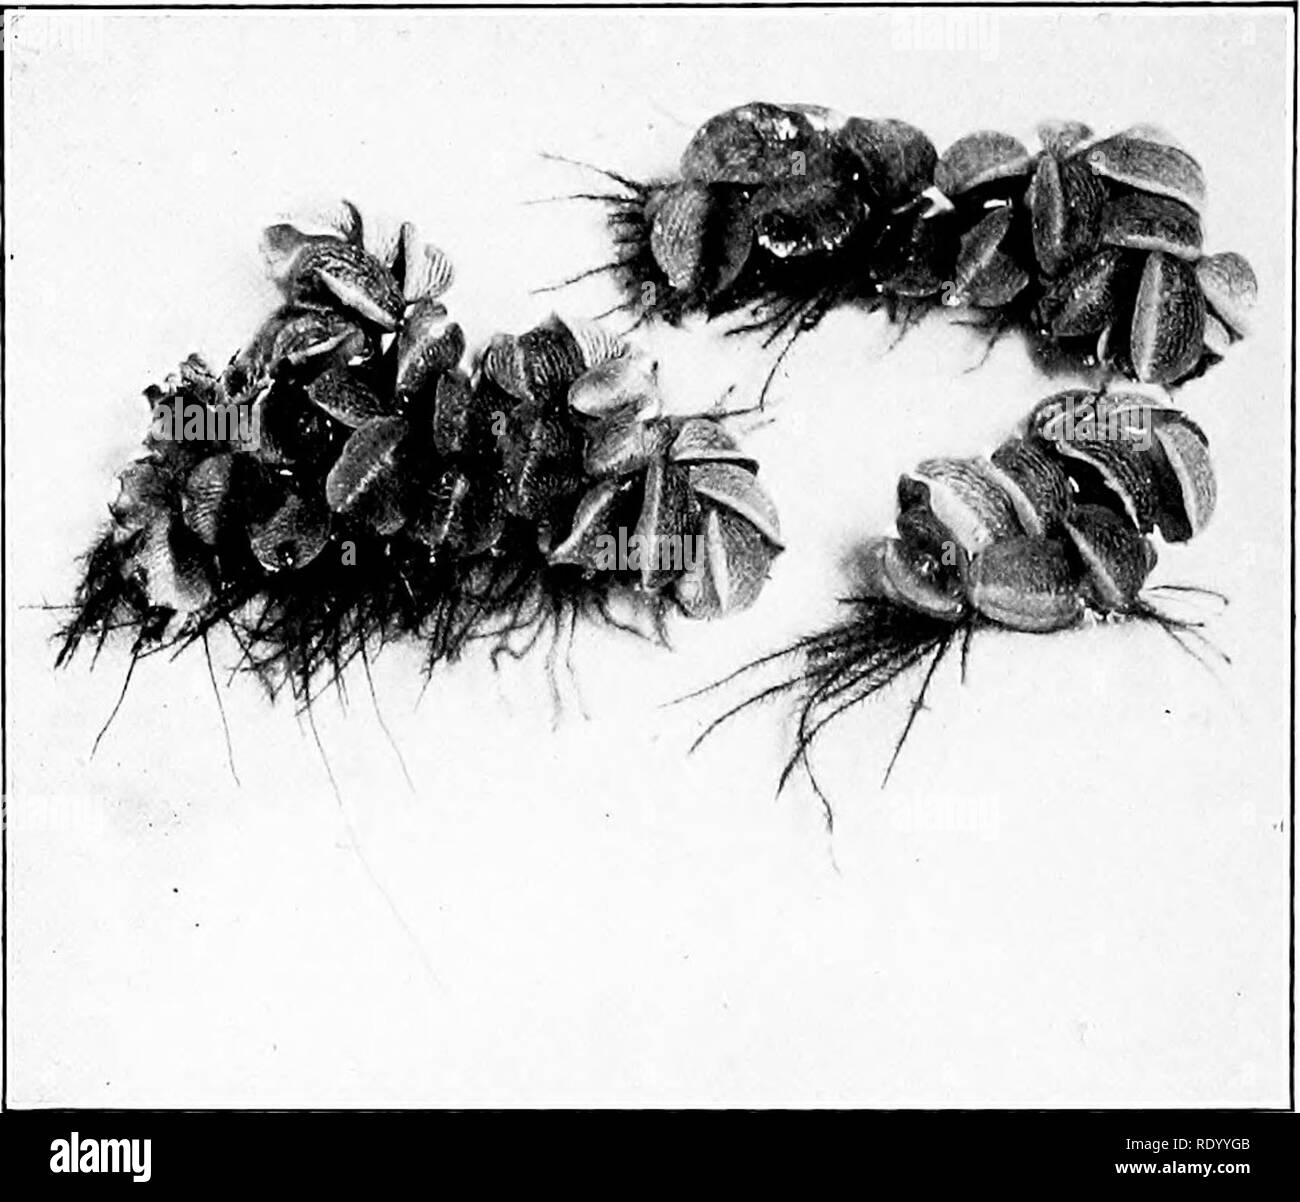 Hairs On The Leaves Black and White Stock Photos & Images